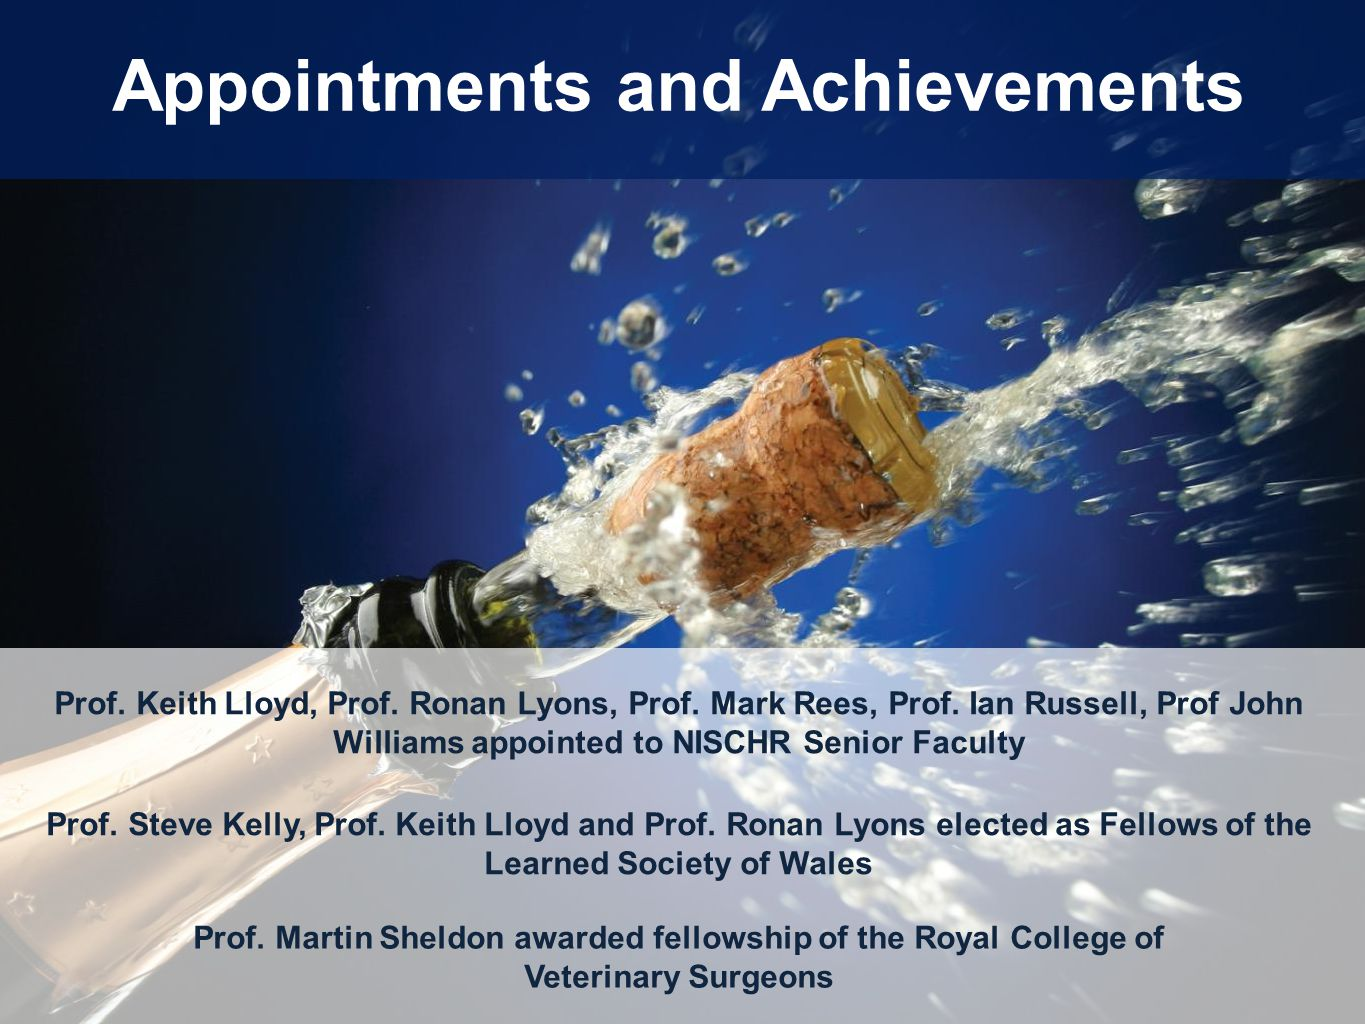 Appointments and Achievements Prof. Keith Lloyd, Prof. Ronan Lyons, Prof. Mark Rees, Prof. Ian Russell, Prof John Williams appointed to NISCHR Senior